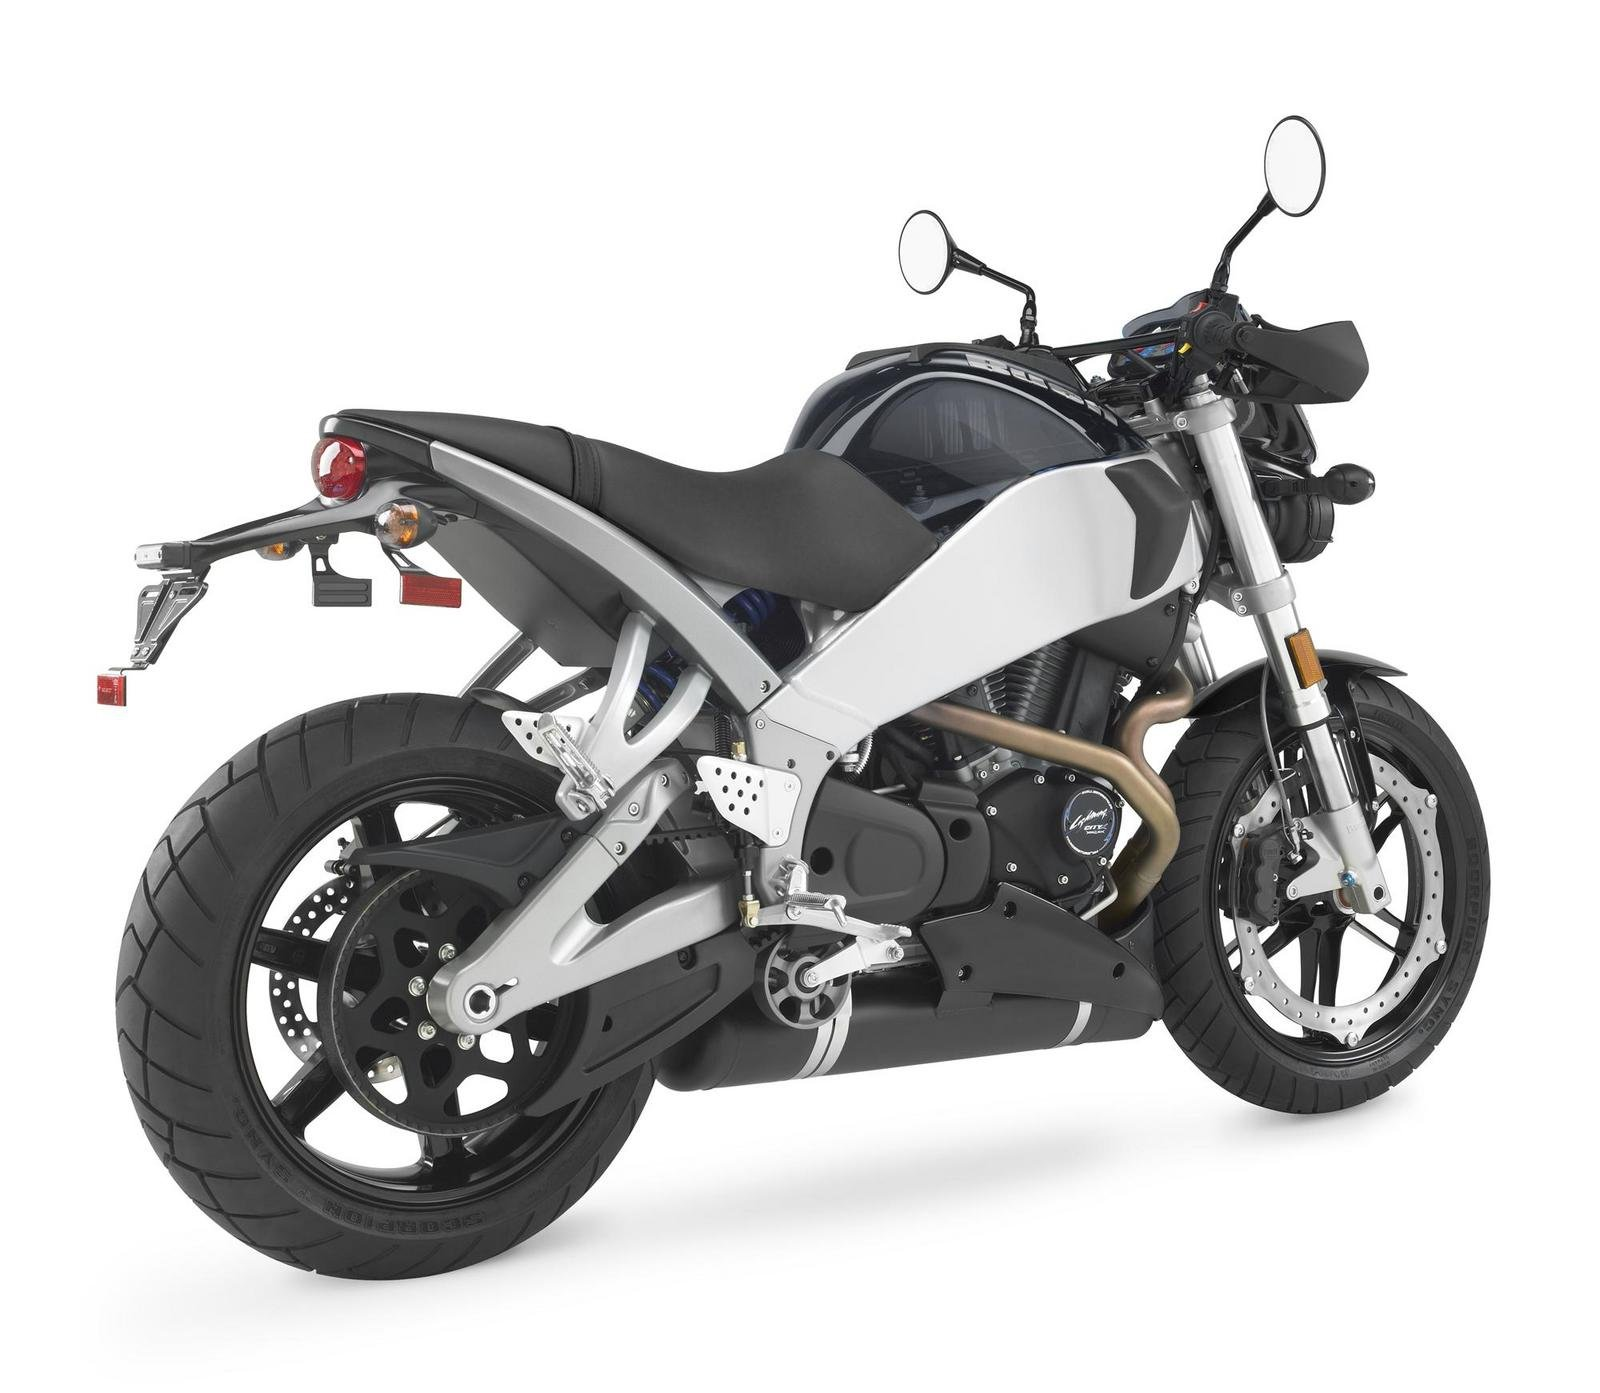 Motorcycle Review Top Speed: 2007 Buell Lightning CityX XB9SX